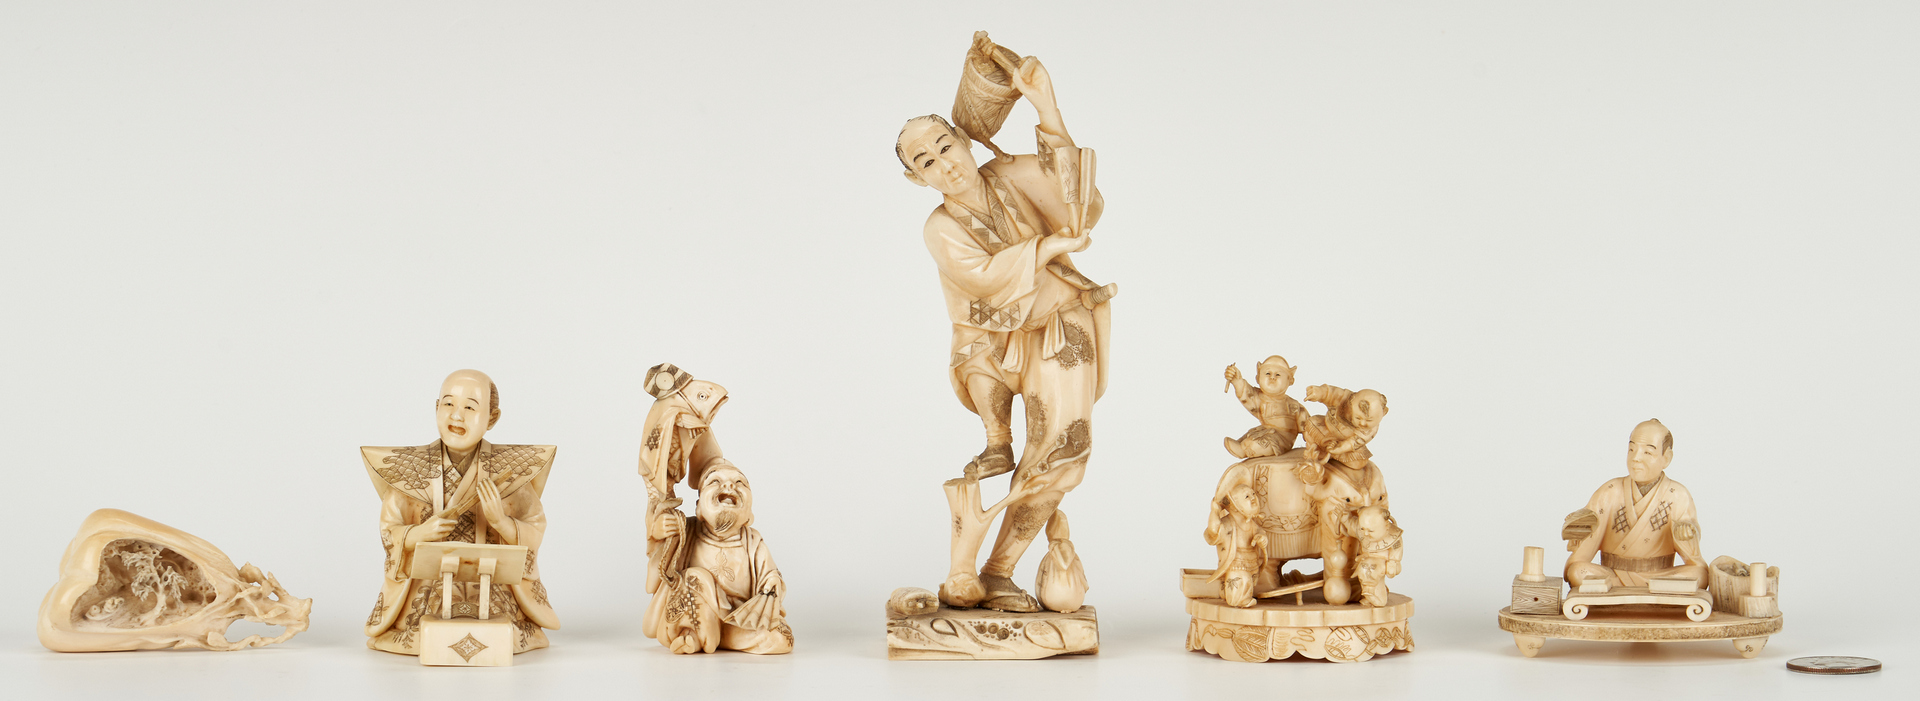 Lot 990: 6 Japanese Carved Okimono Figurals